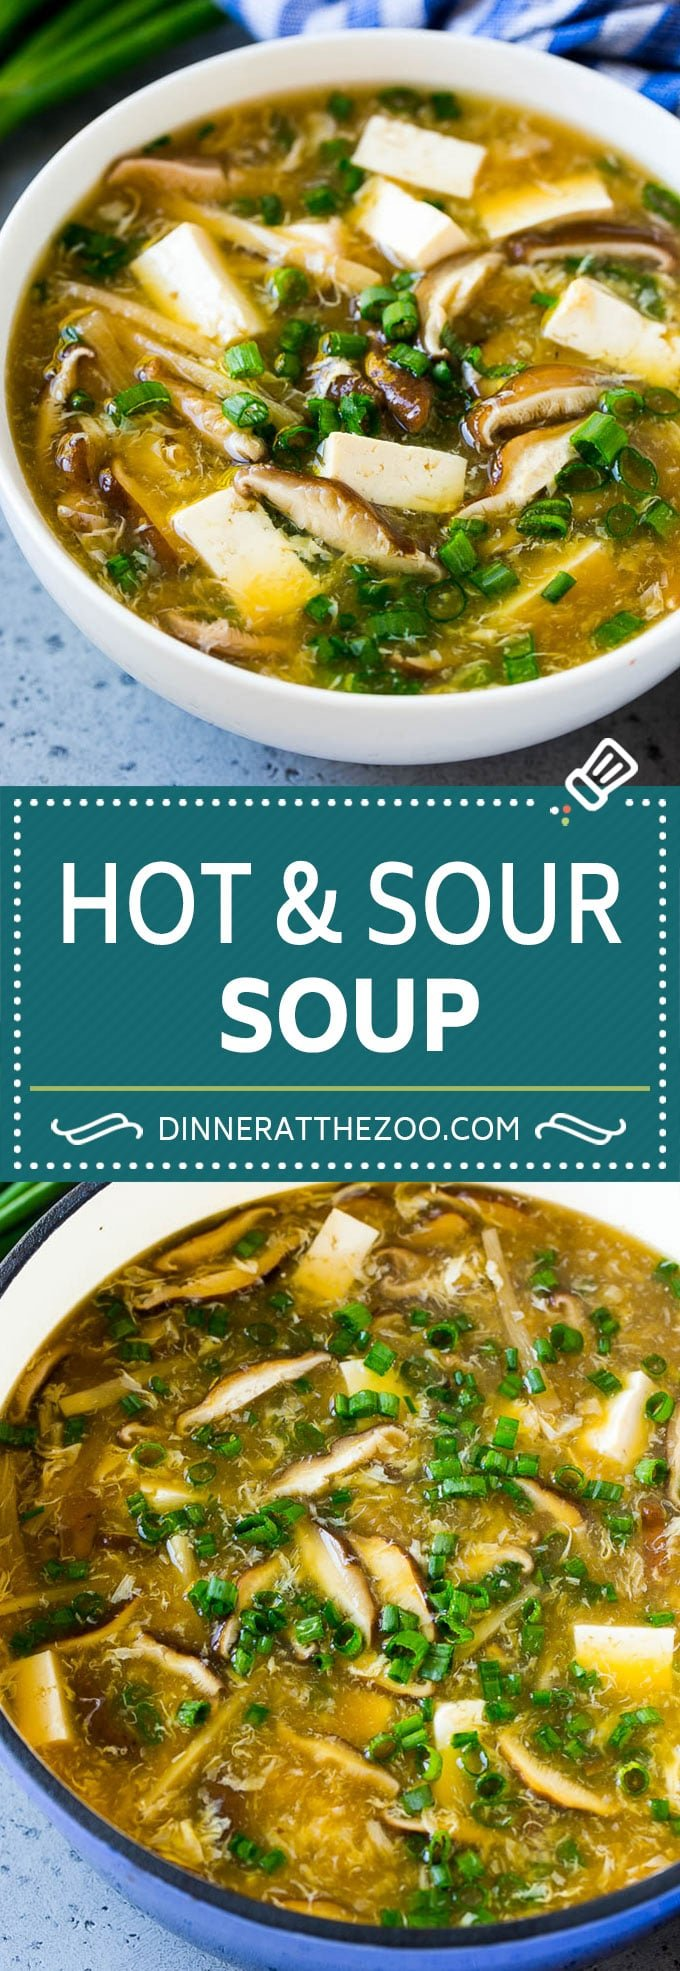 Hot and Sour Soup Recipe | Chinese Soup Recipe #soup #chinese #asian #dinner #vegetarian #tofu #mushrooms #dinneratthezoo